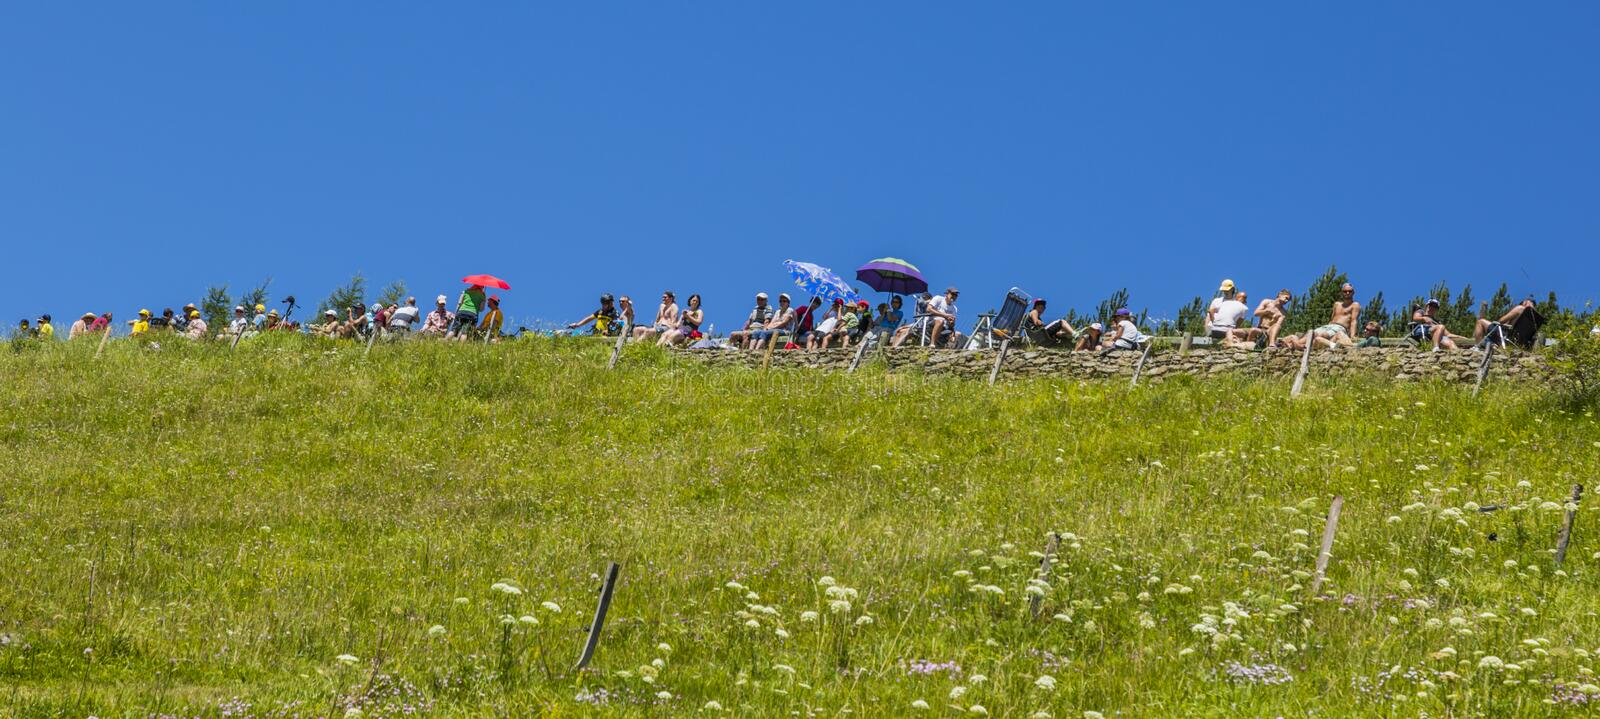 Spectators in Mountains - Tour de France 2014 royalty free stock image